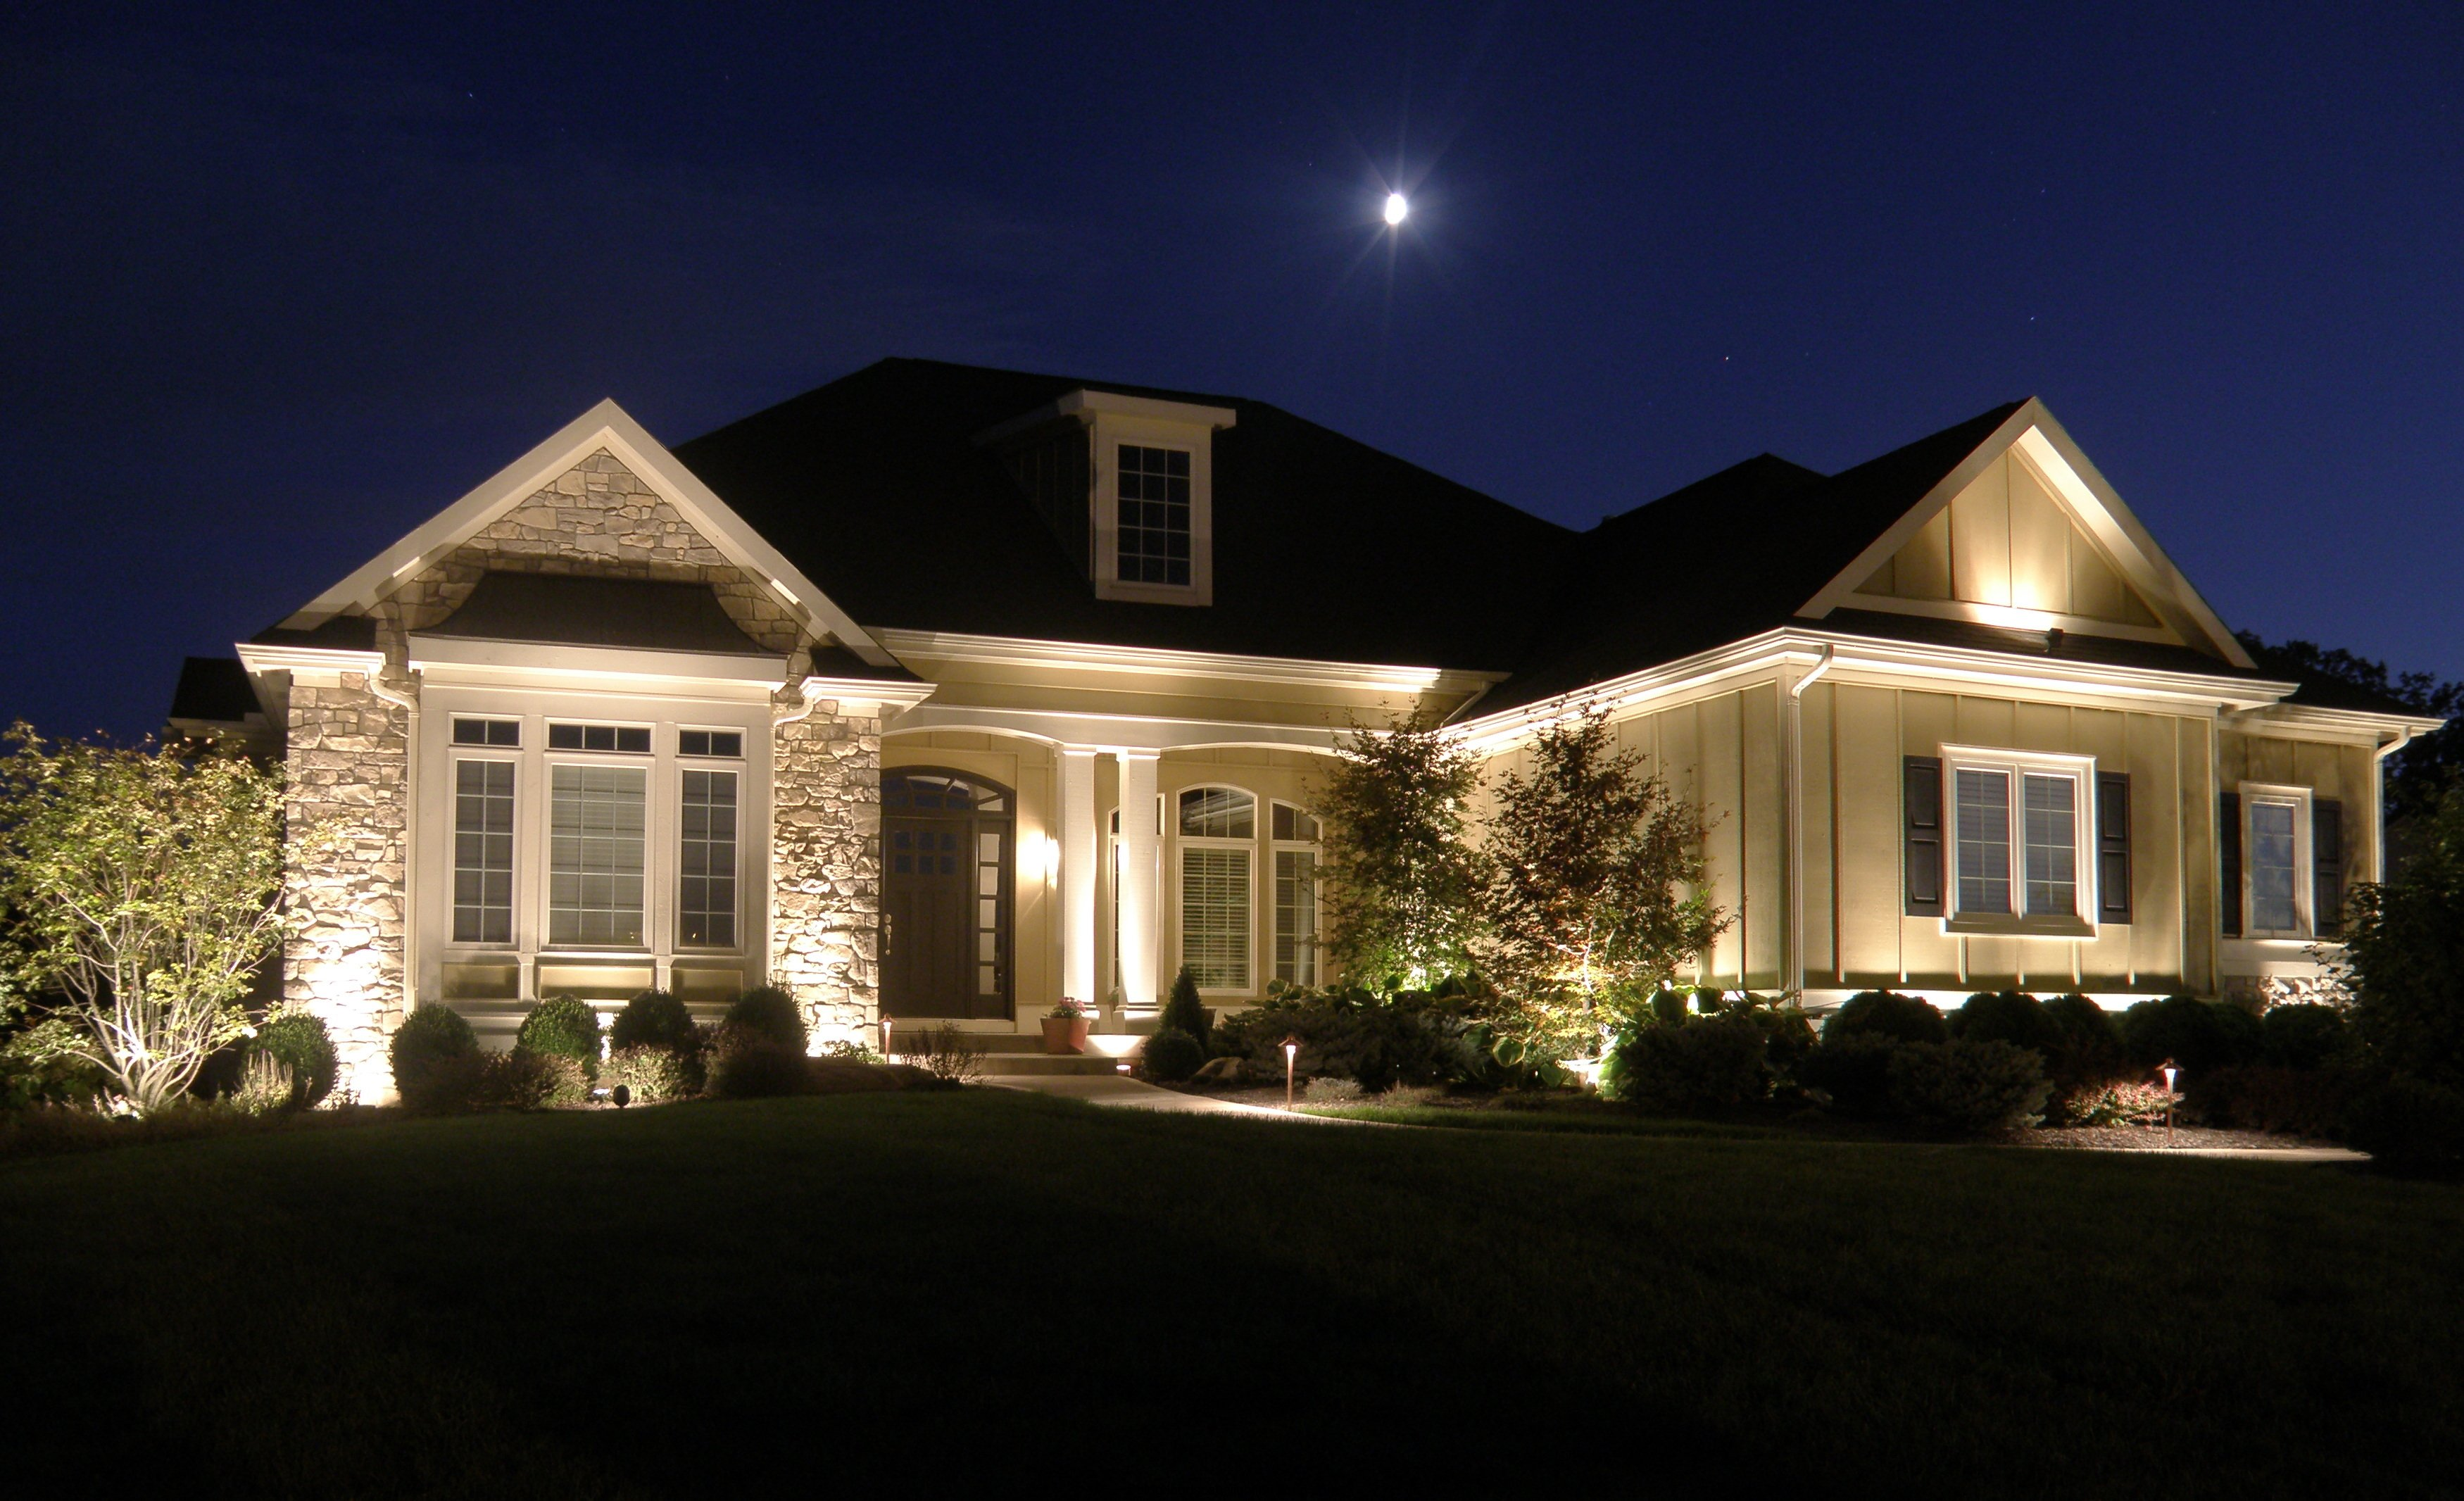 Landscape lighting - How to design outdoor lighting plan ...